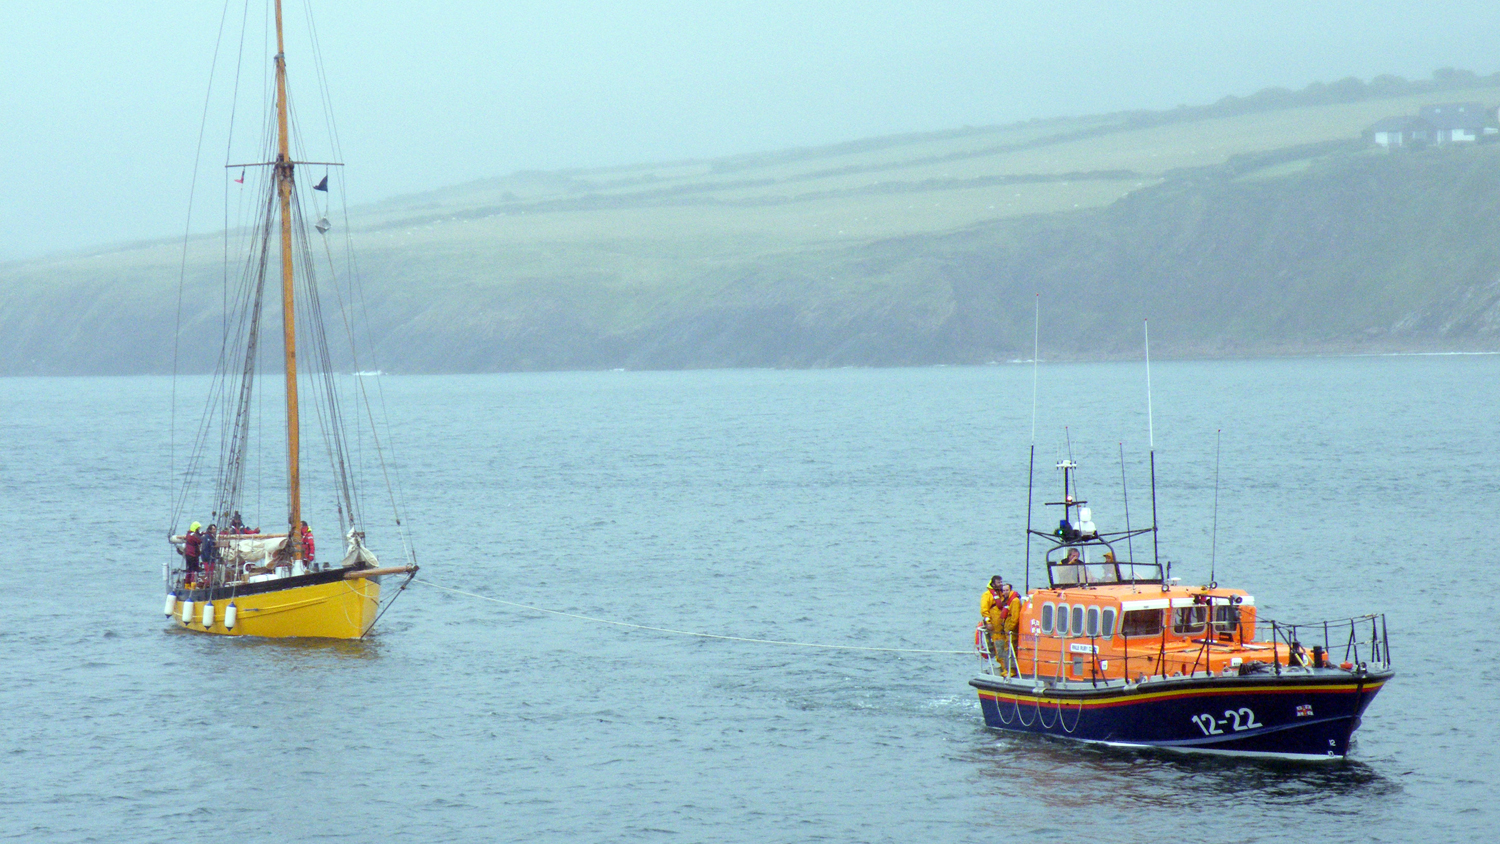 RNLI Peel's Mersey class lifeboat towing a boat